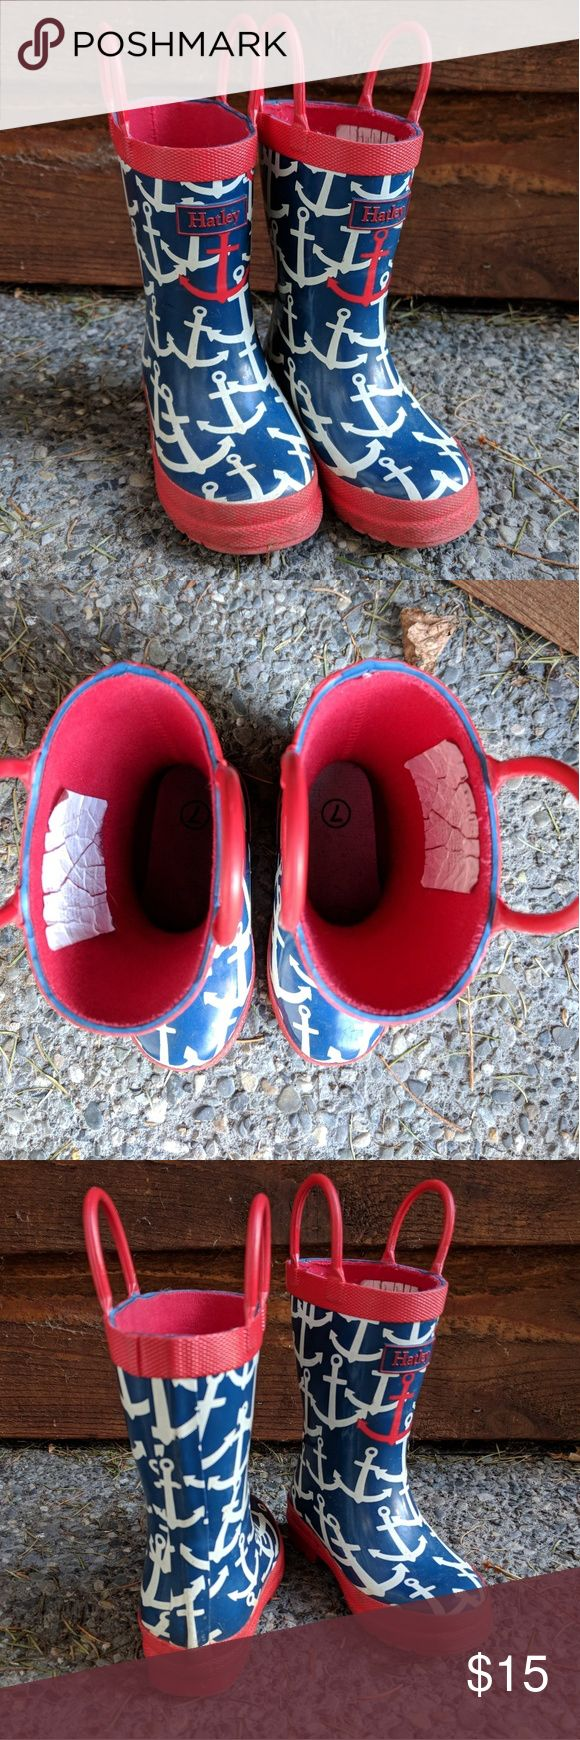 HATLEY Toddler Rain Boots ⚓ Great used condition! These adorable nautical print rain boots by Hatley are great for a boy or girl. Red, white and blue colour scheme goes with tons of outfits! These have been worn by my daughter on and off, but have been very well taken care of. Soles are in near perfect shape and is very limited signs of wear elsewhere on the boots. These are a Size 7, but I marked them as 7.5 as I think they run slightly big. Hatley Shoes Rain & Snow Boots